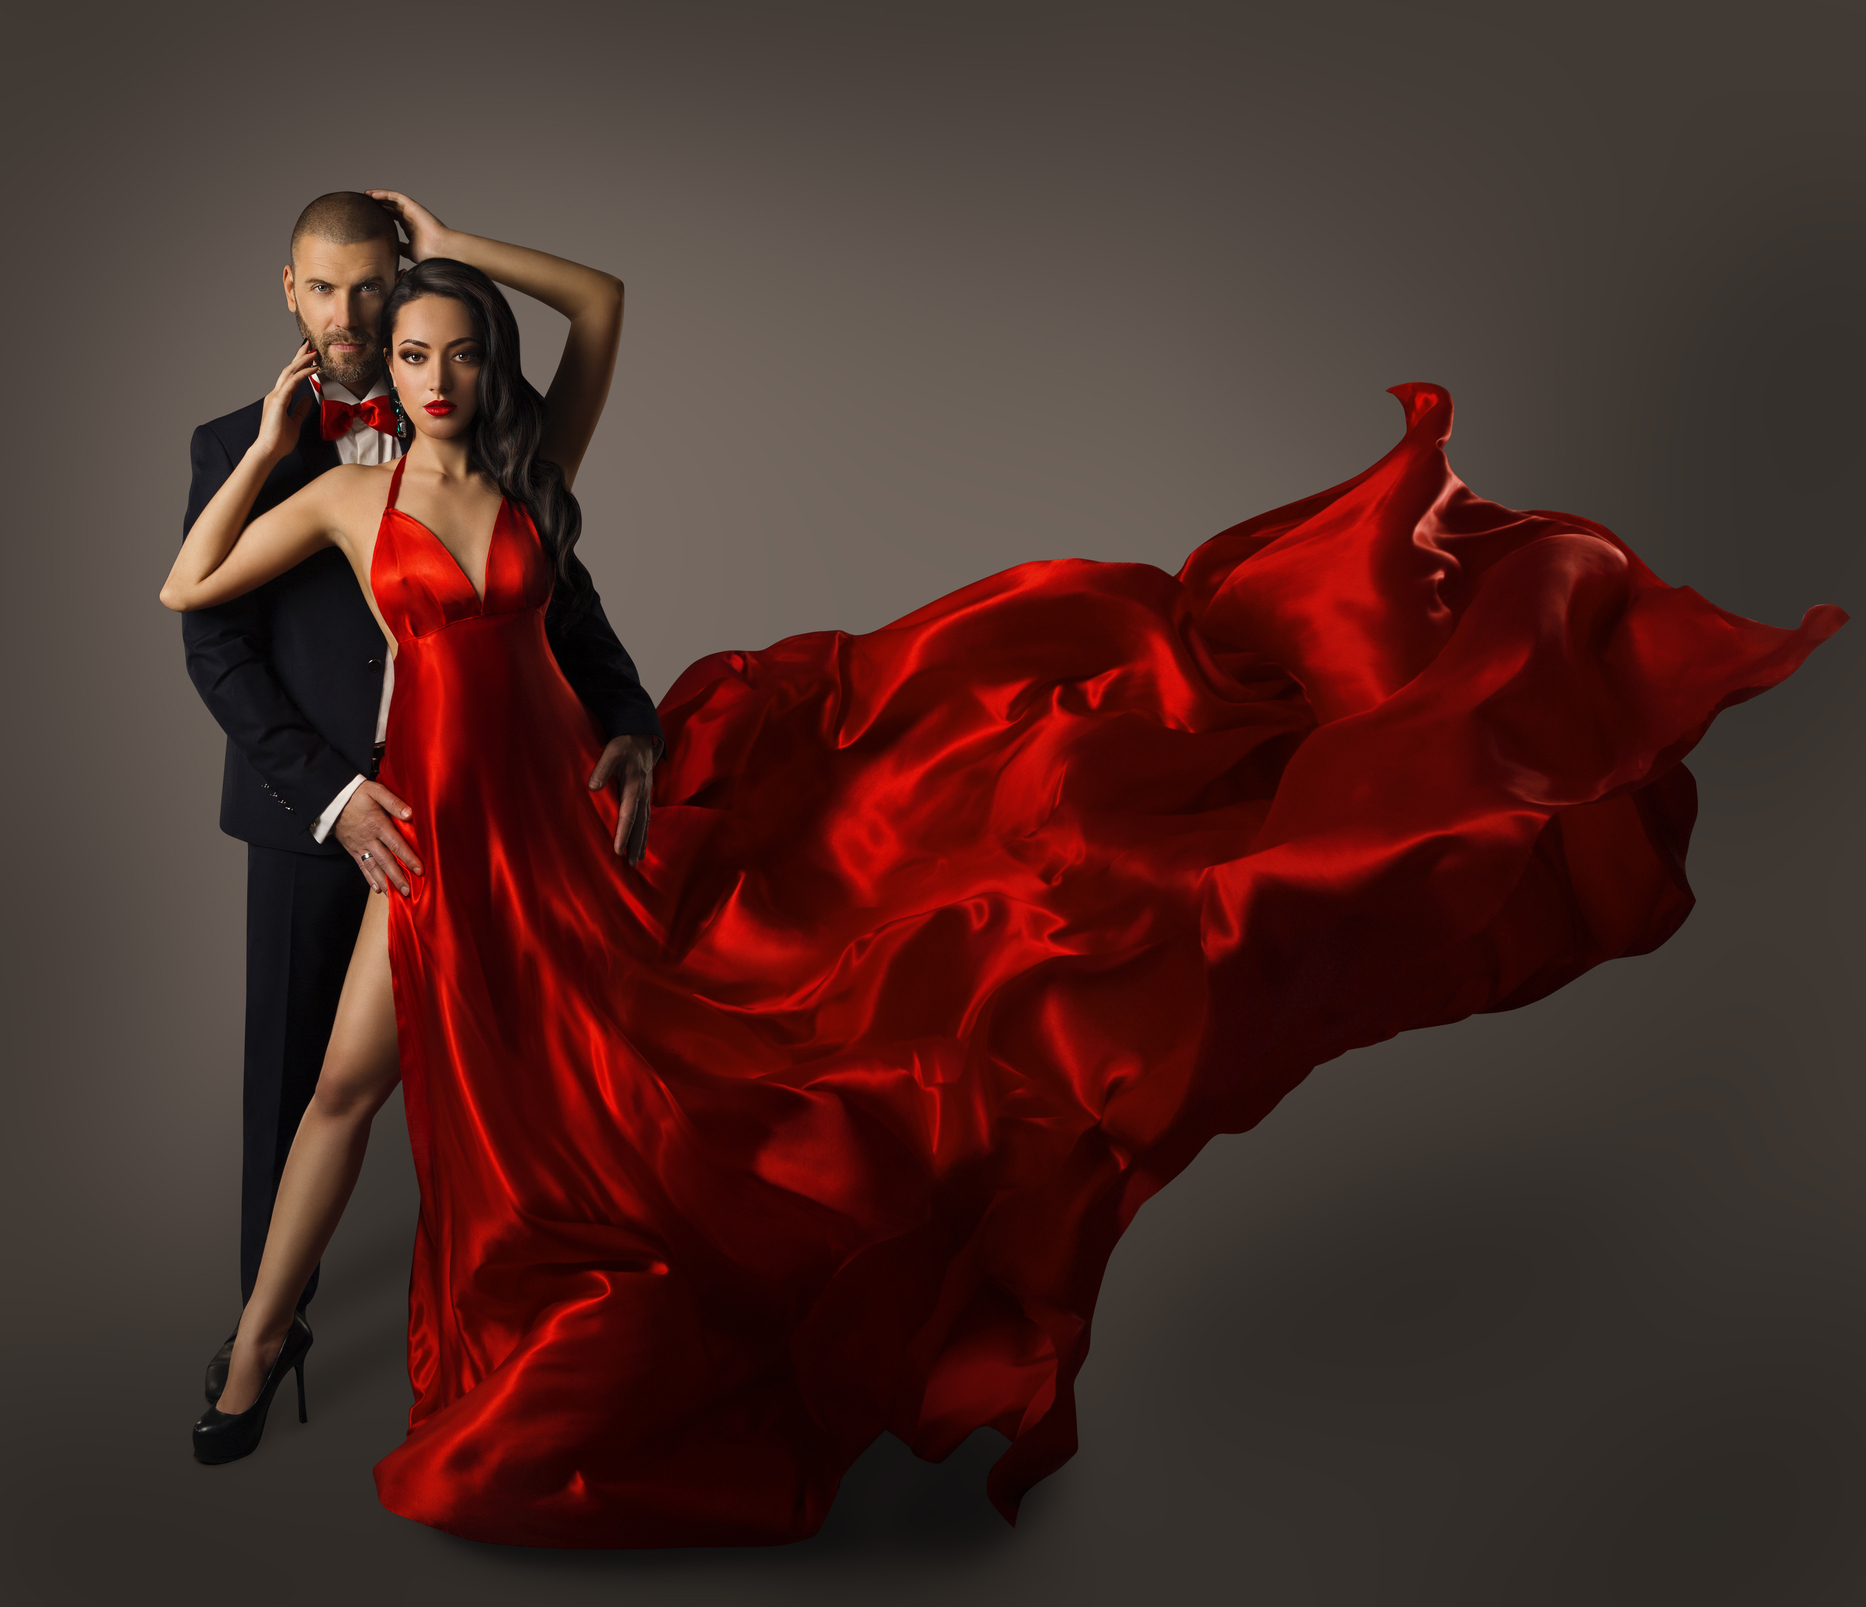 Fashion Couple Portrait, Woman Red Dress, Man Suit, Flying Cloth